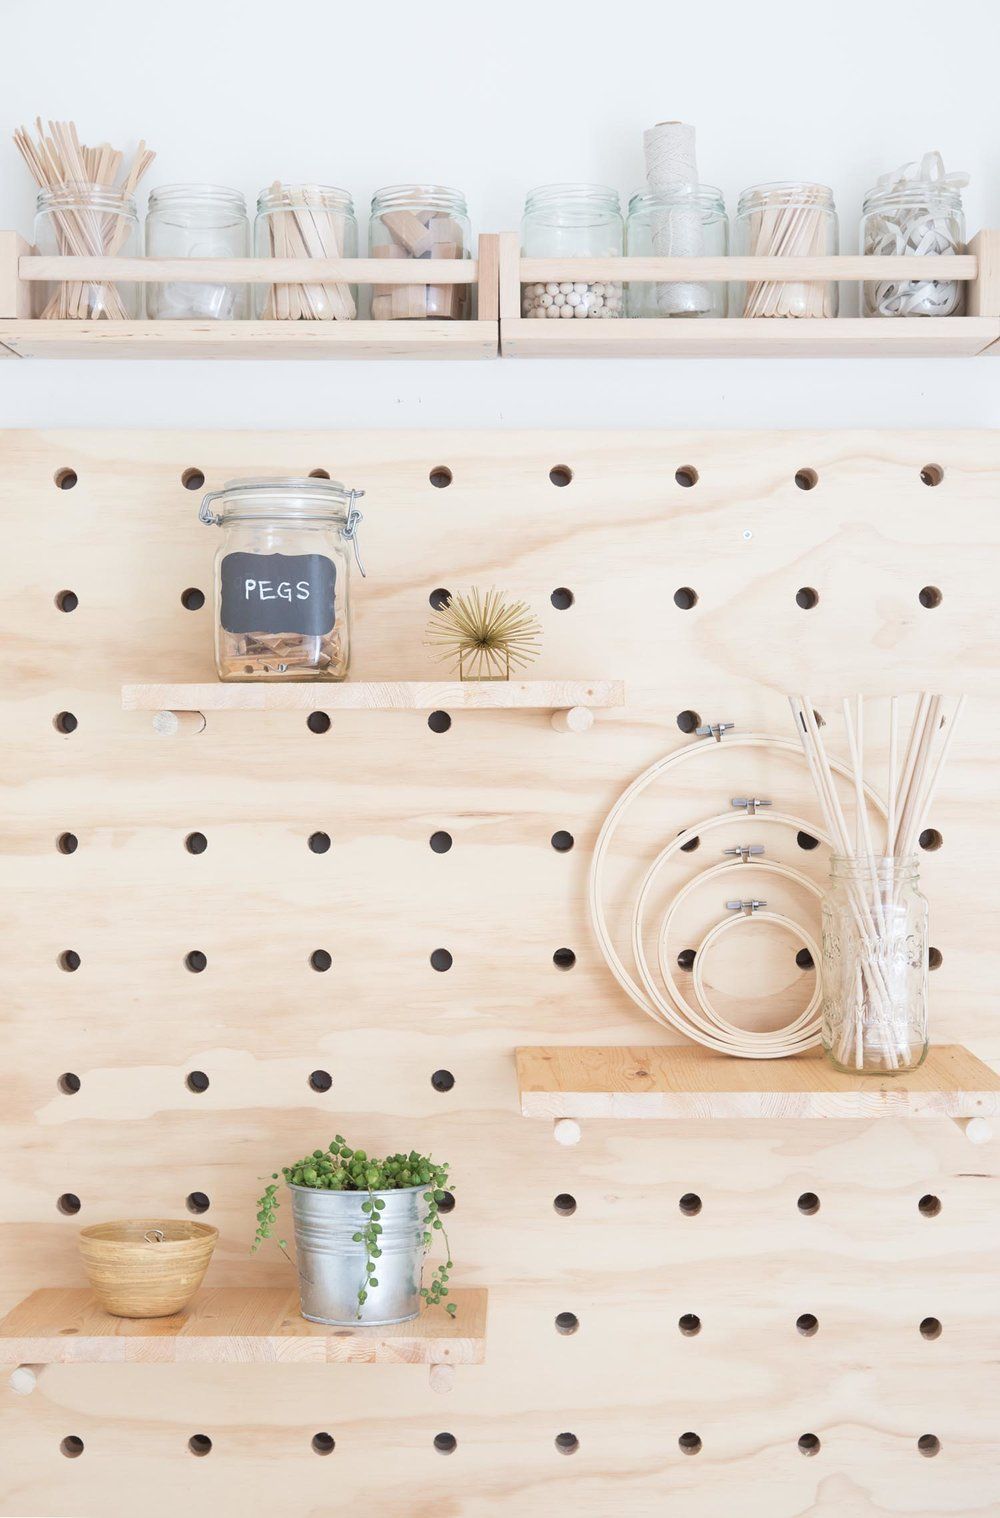 giant pegboard wall decor